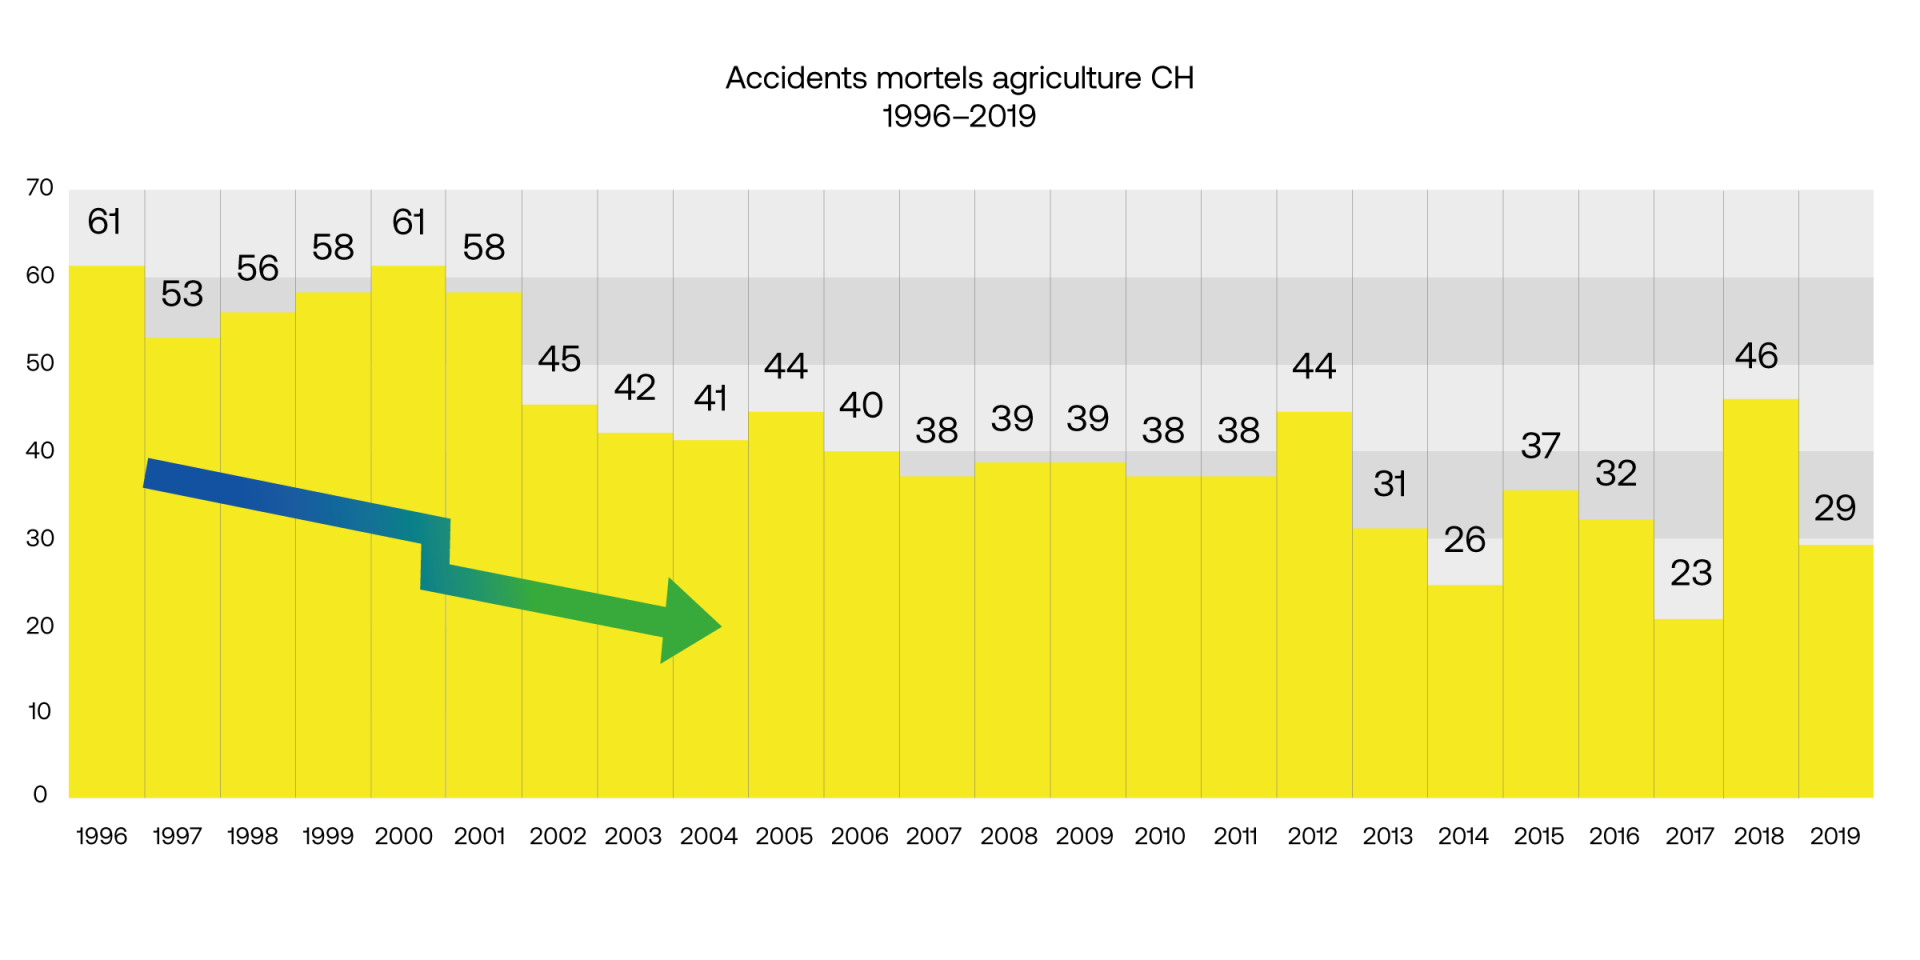 Agriculture accidents mortels